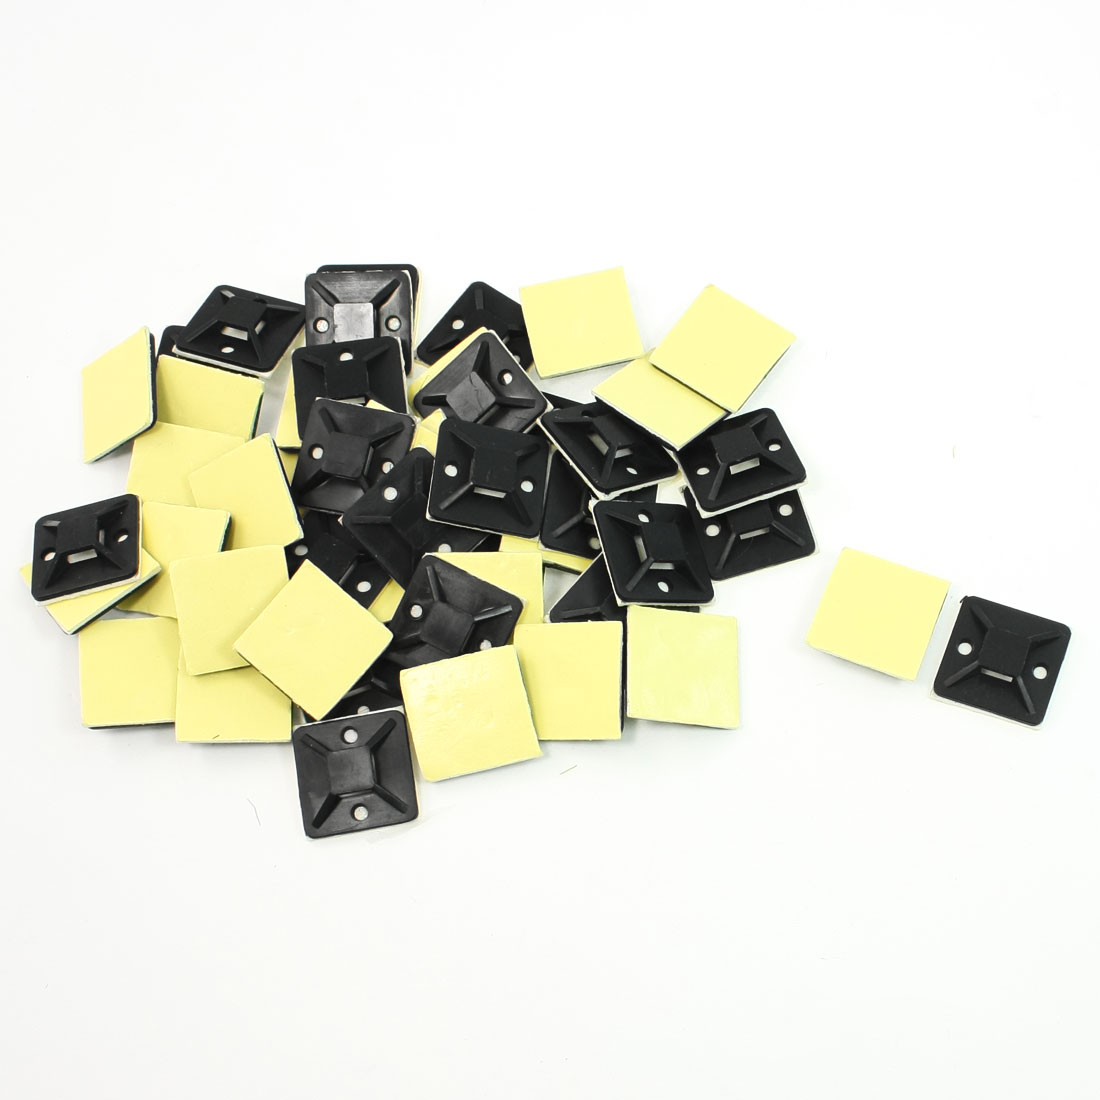 50 Pcs Plastic Black Self-adhesive 4 Way Tie Mounts Cable Base